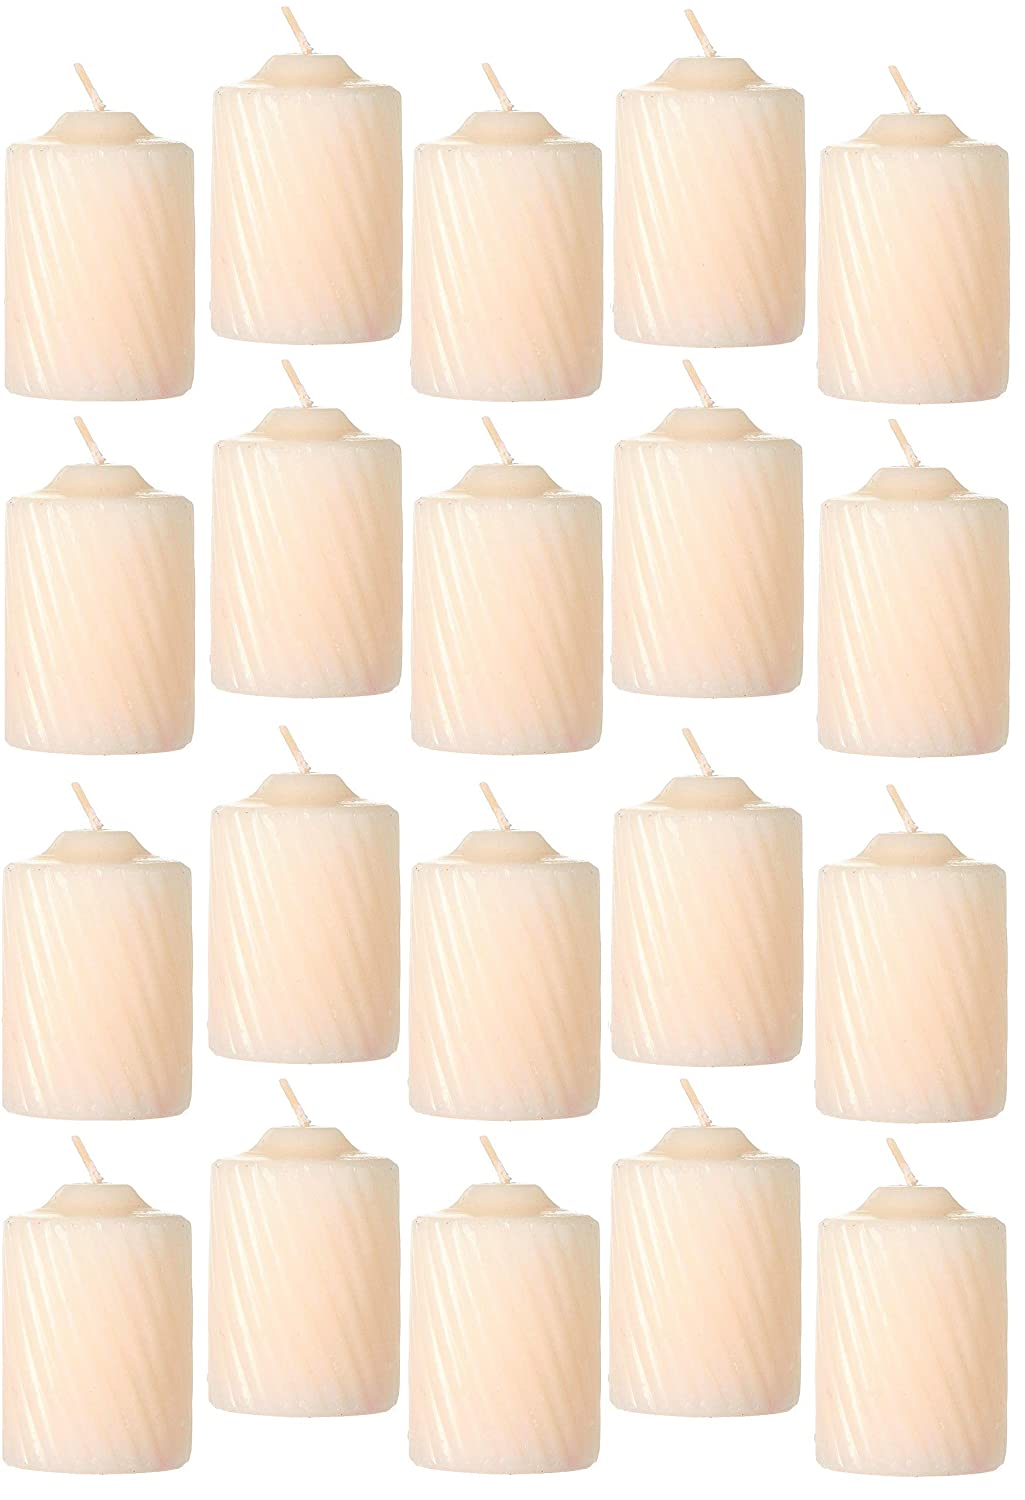 2 Tall /& 1.5 Diameter 15-Hour Burn Time Set of Twenty 20 Fluted Textured Finished Sides Decorative Indoor Decor Accent Ivory Cream Vanilla Scented Wax Votive Candles Bundle of 20-Items